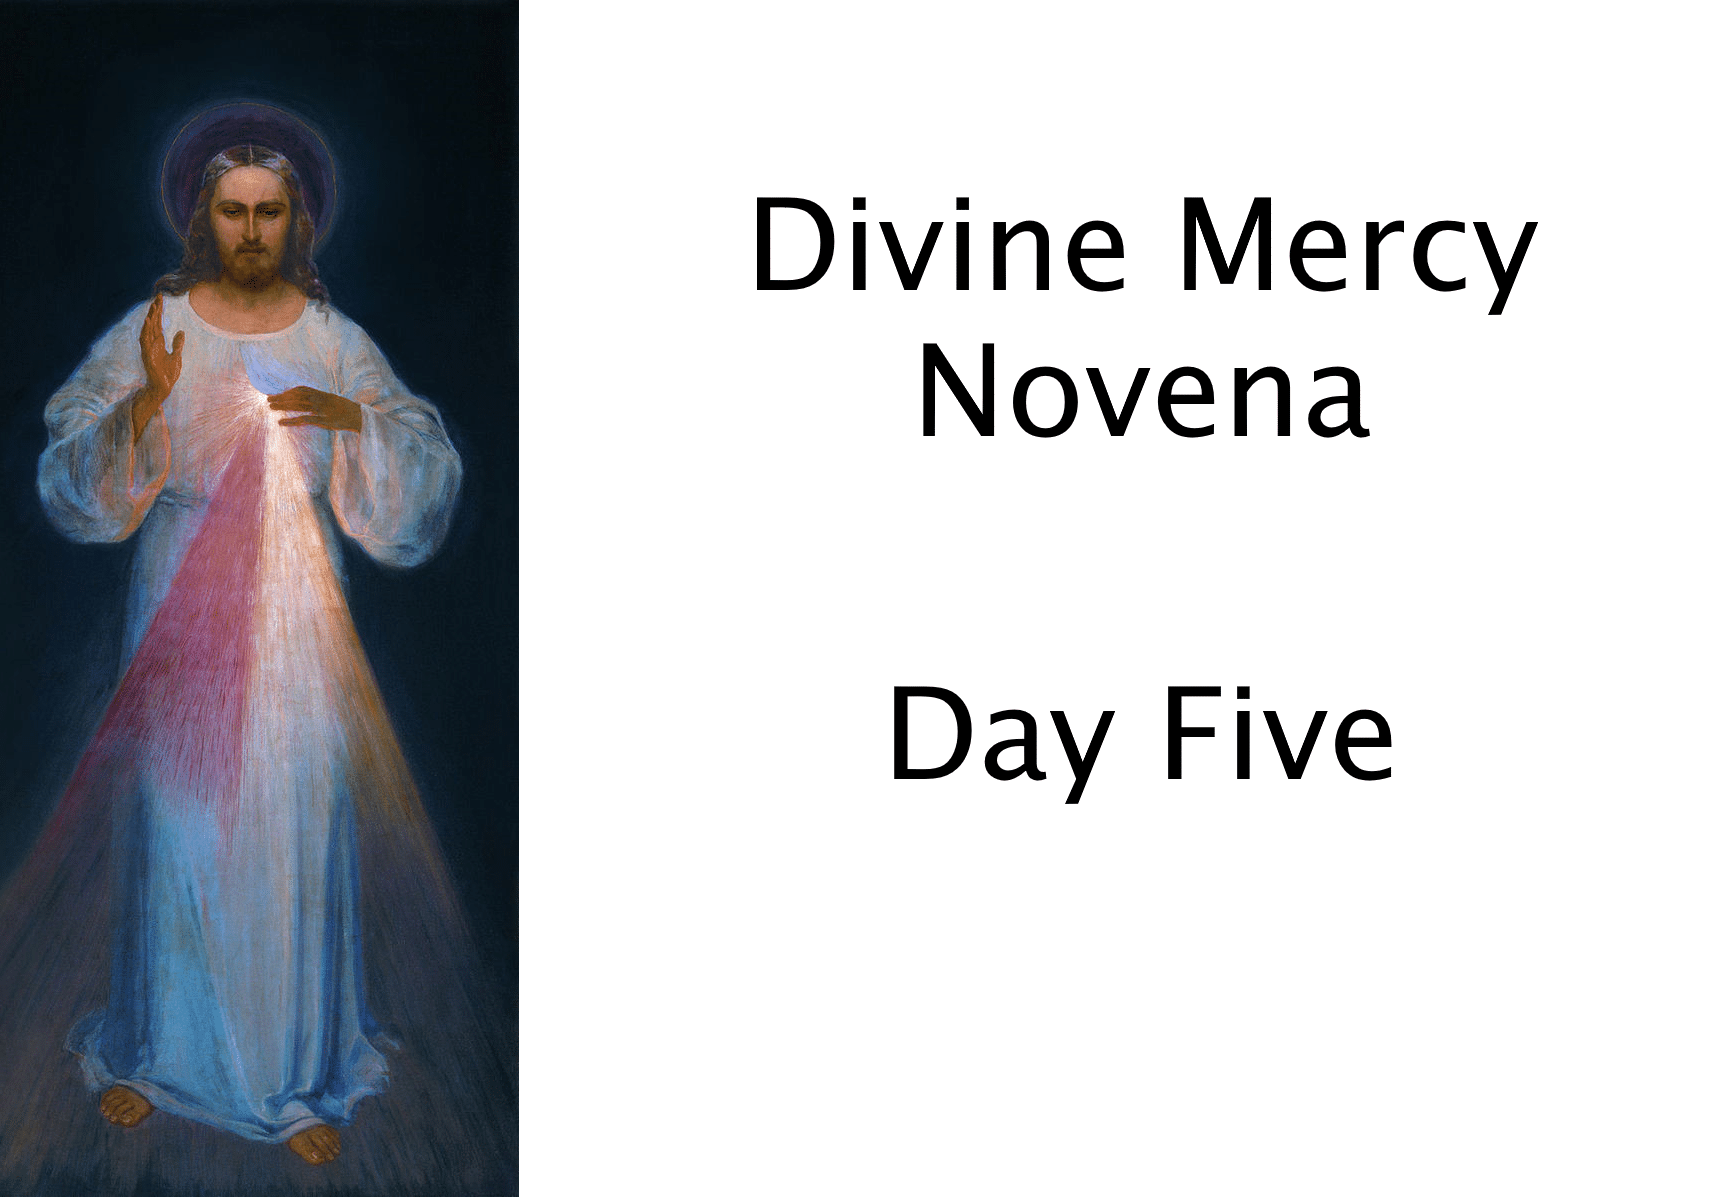 Divine Mercy Novena Day Five